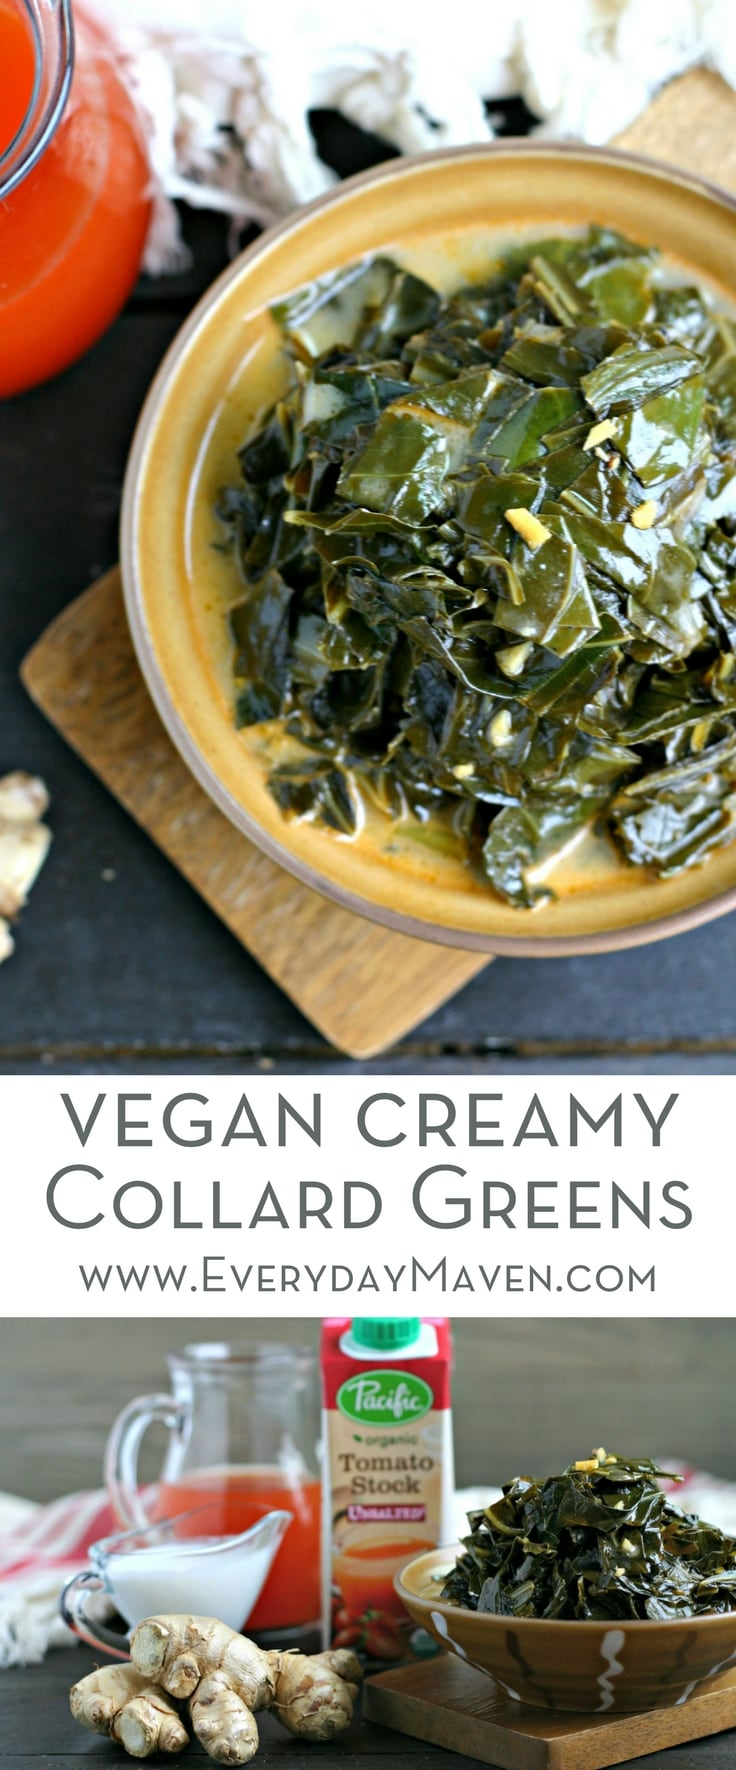 Creamy Vegan Collard Greens with Tomato Stock, Ginger and Coconut. An easy and flavor-packed side dish that is naturally gluten free and low carb!